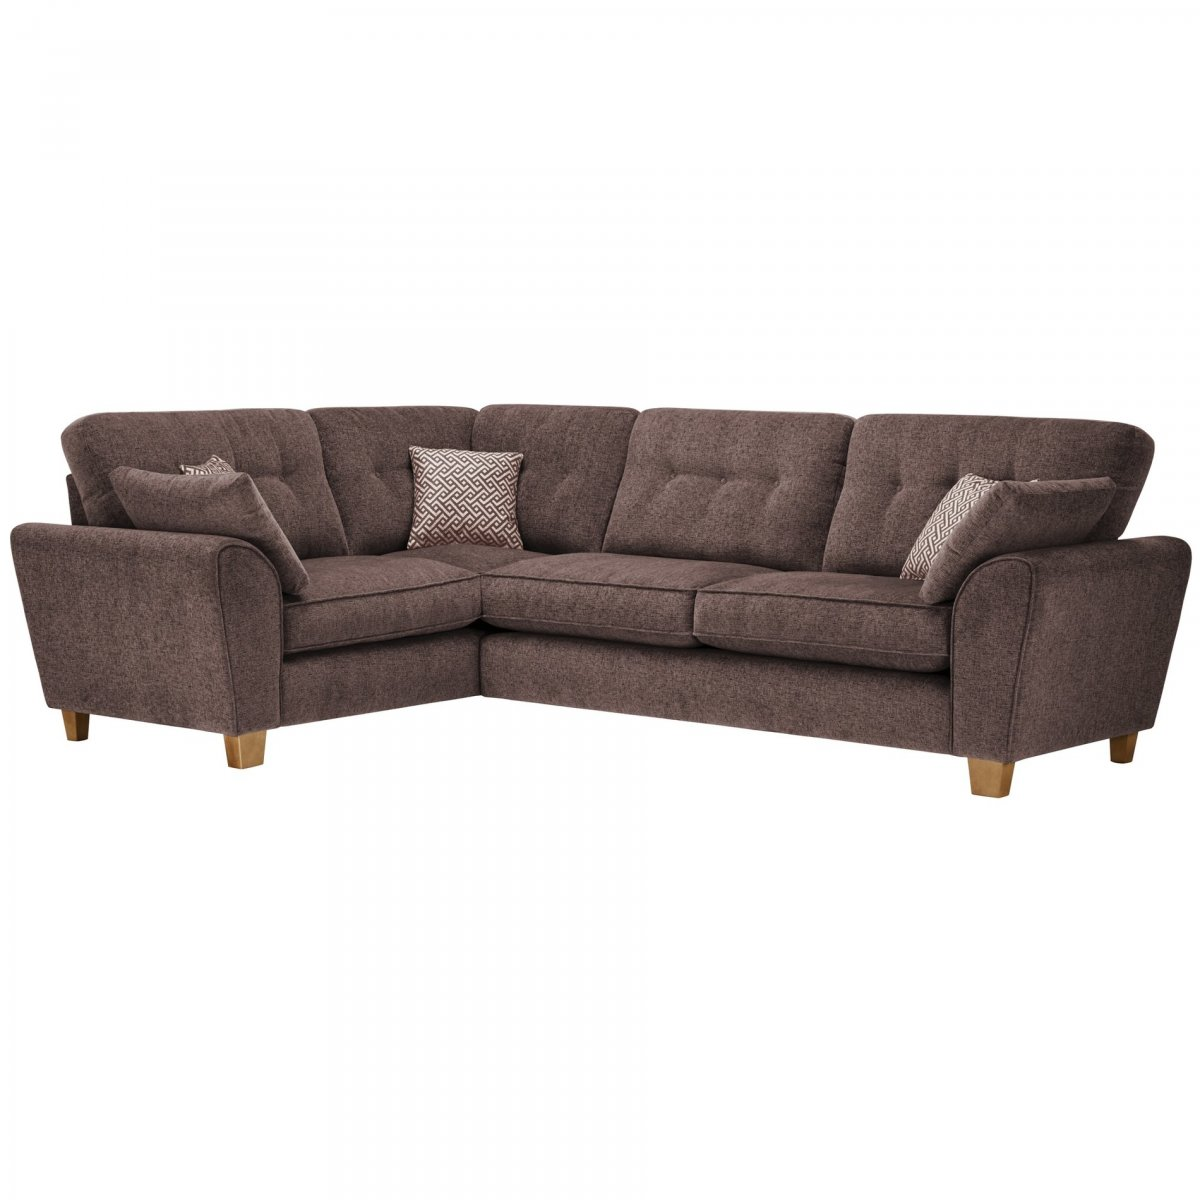 Corner Sofa Left And Right: Brooke Right Hand Corner Sofa In Brown + Brown Scatters